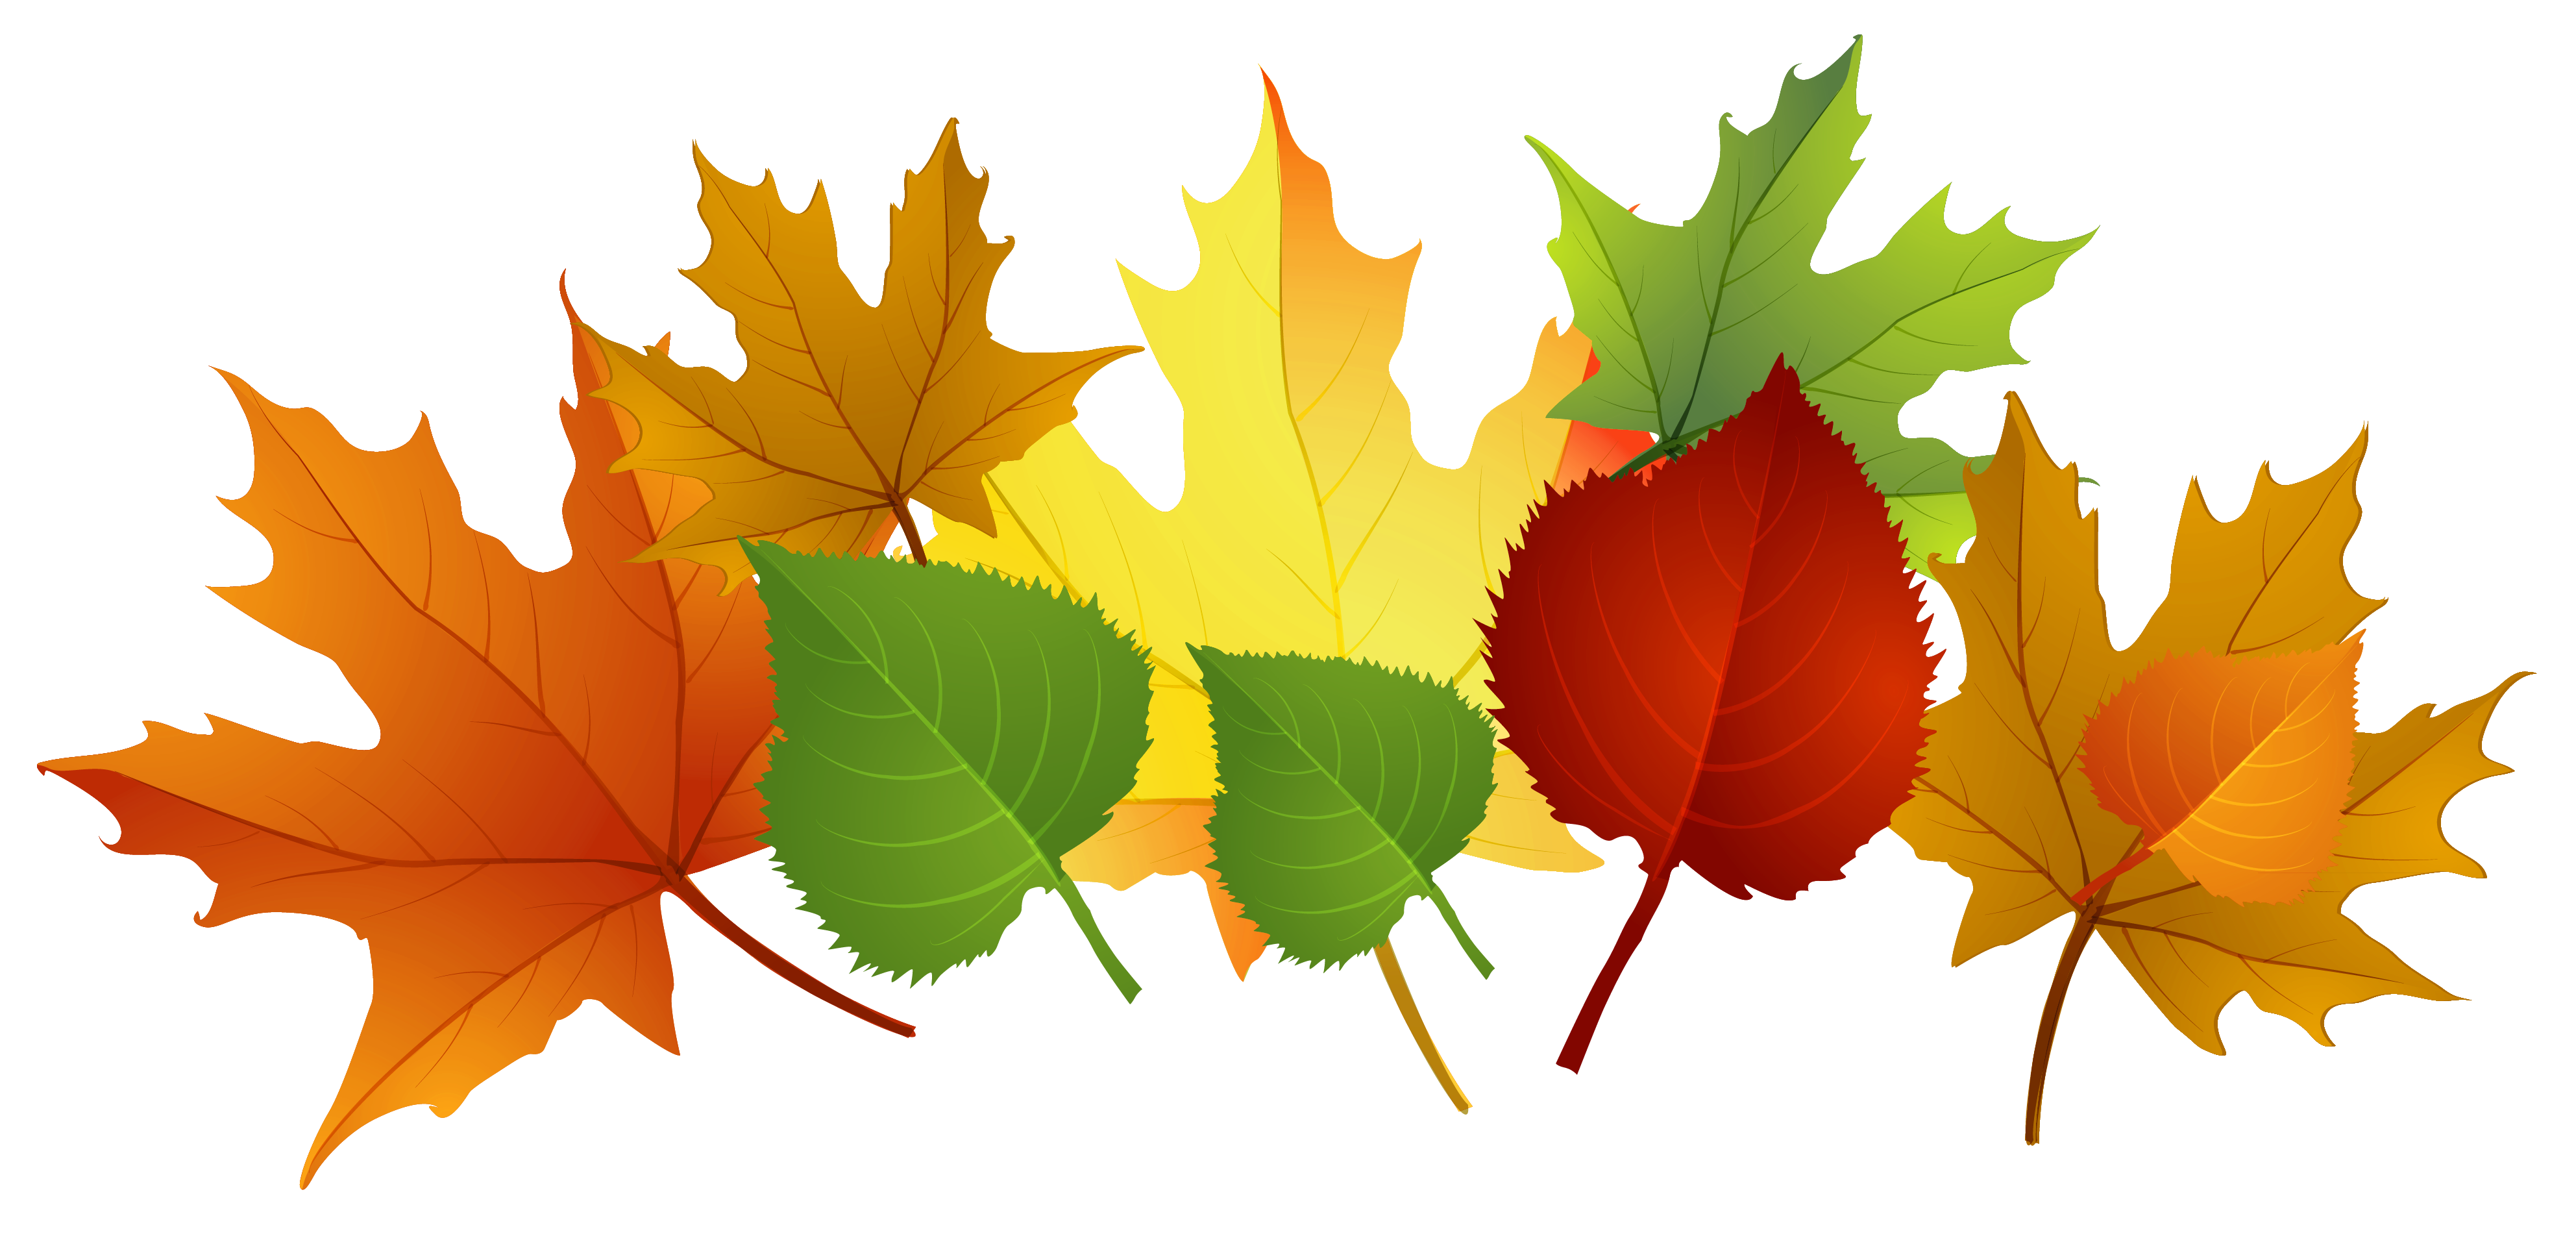 Fall leaves clip art images clipart images gallery for free.